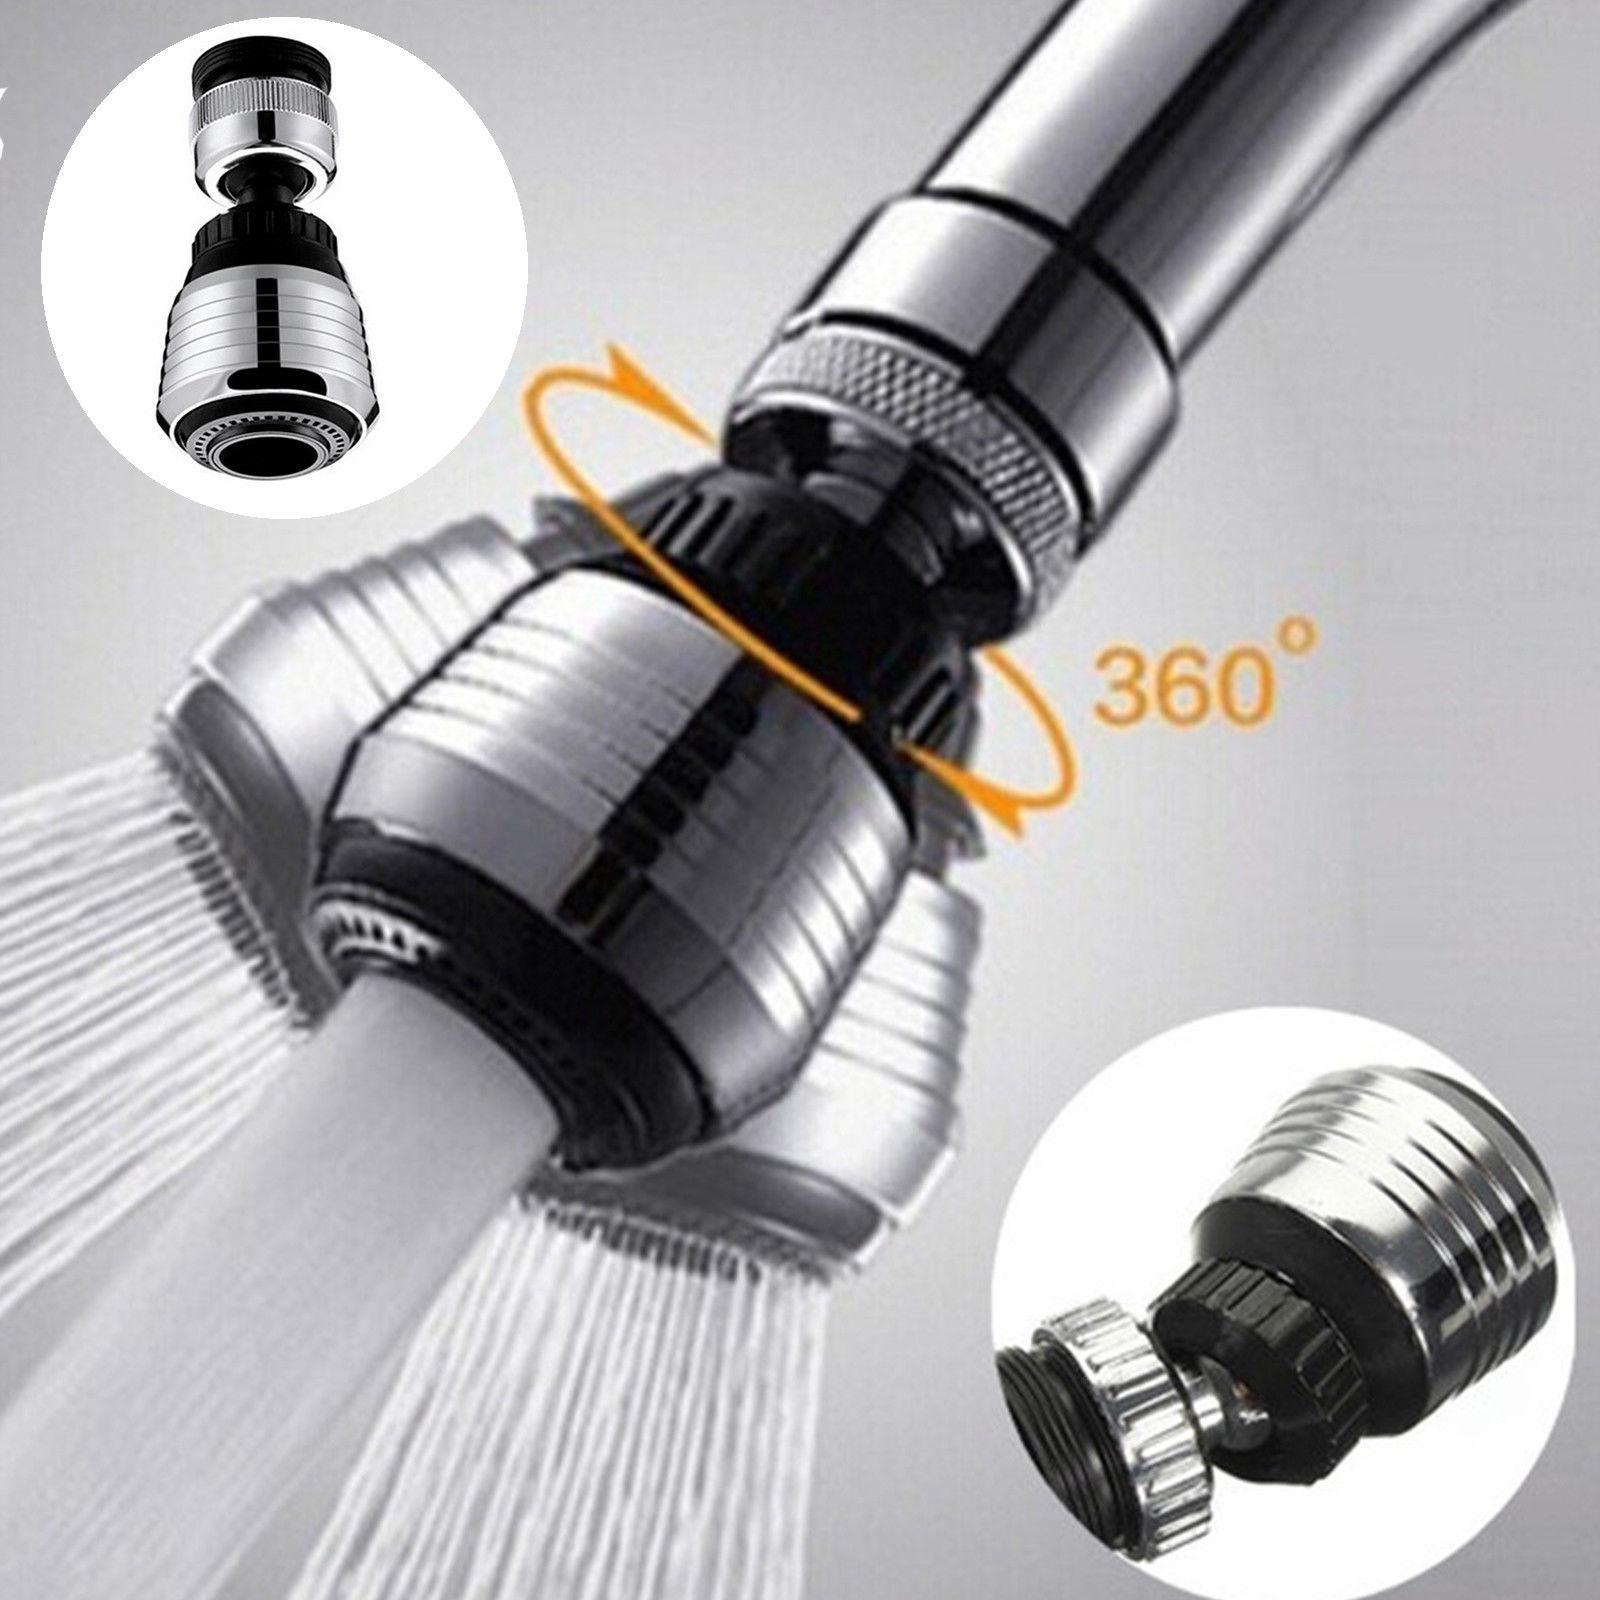 Admirable 360 Rotate Swivel Faucet Nozzle Filter Adapter Water Saving Tap Aerator Diffuser Kitchen Faucet Bubbler Aaa736 Home Interior And Landscaping Ologienasavecom